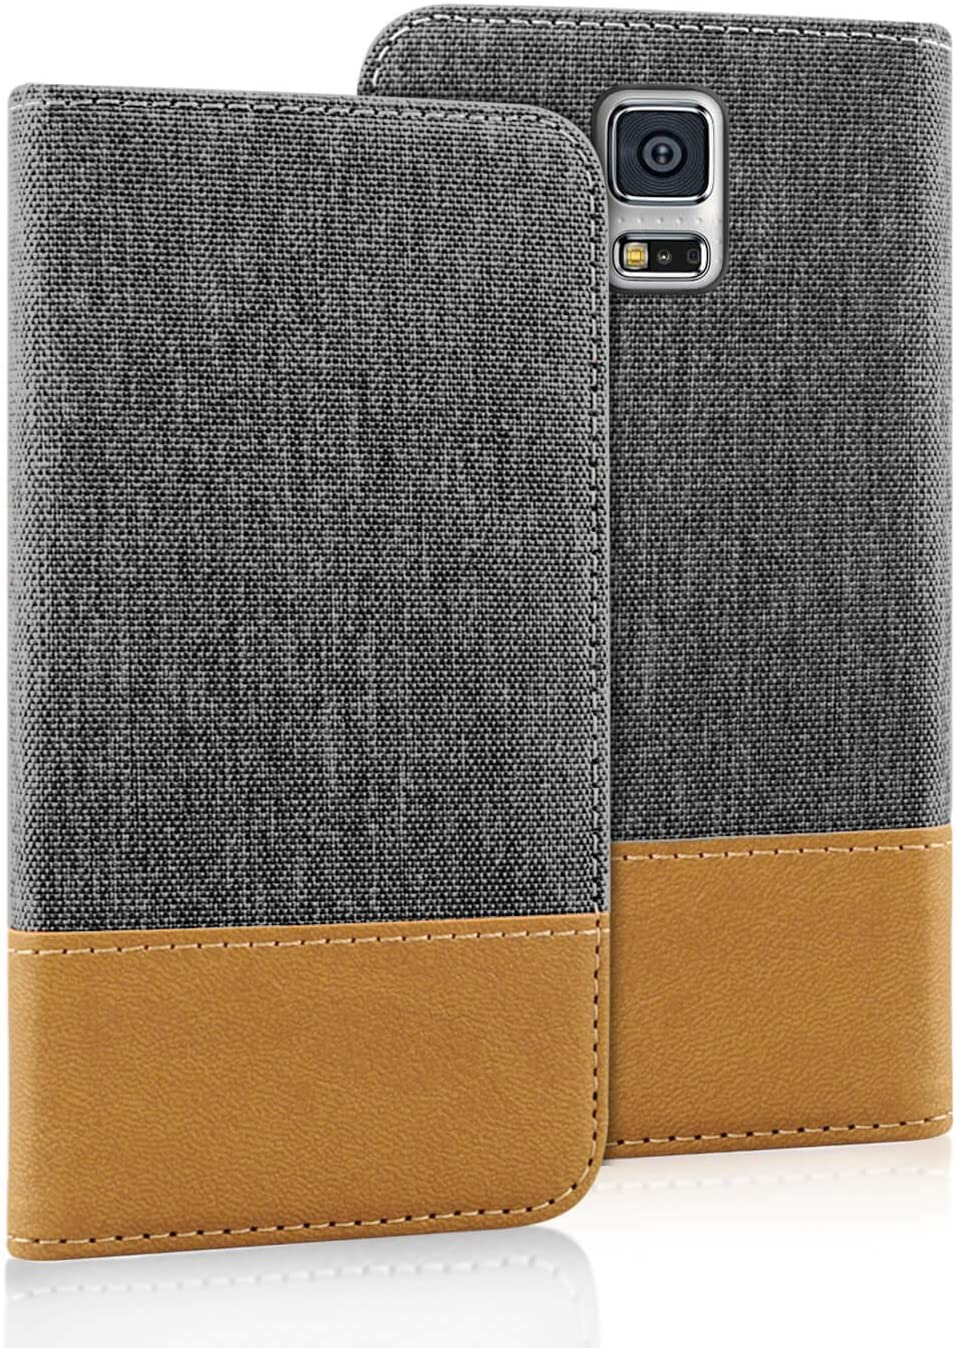 Leather Case for Samsung Galaxy S5 Mini Tough Wallet Model Navy Blue